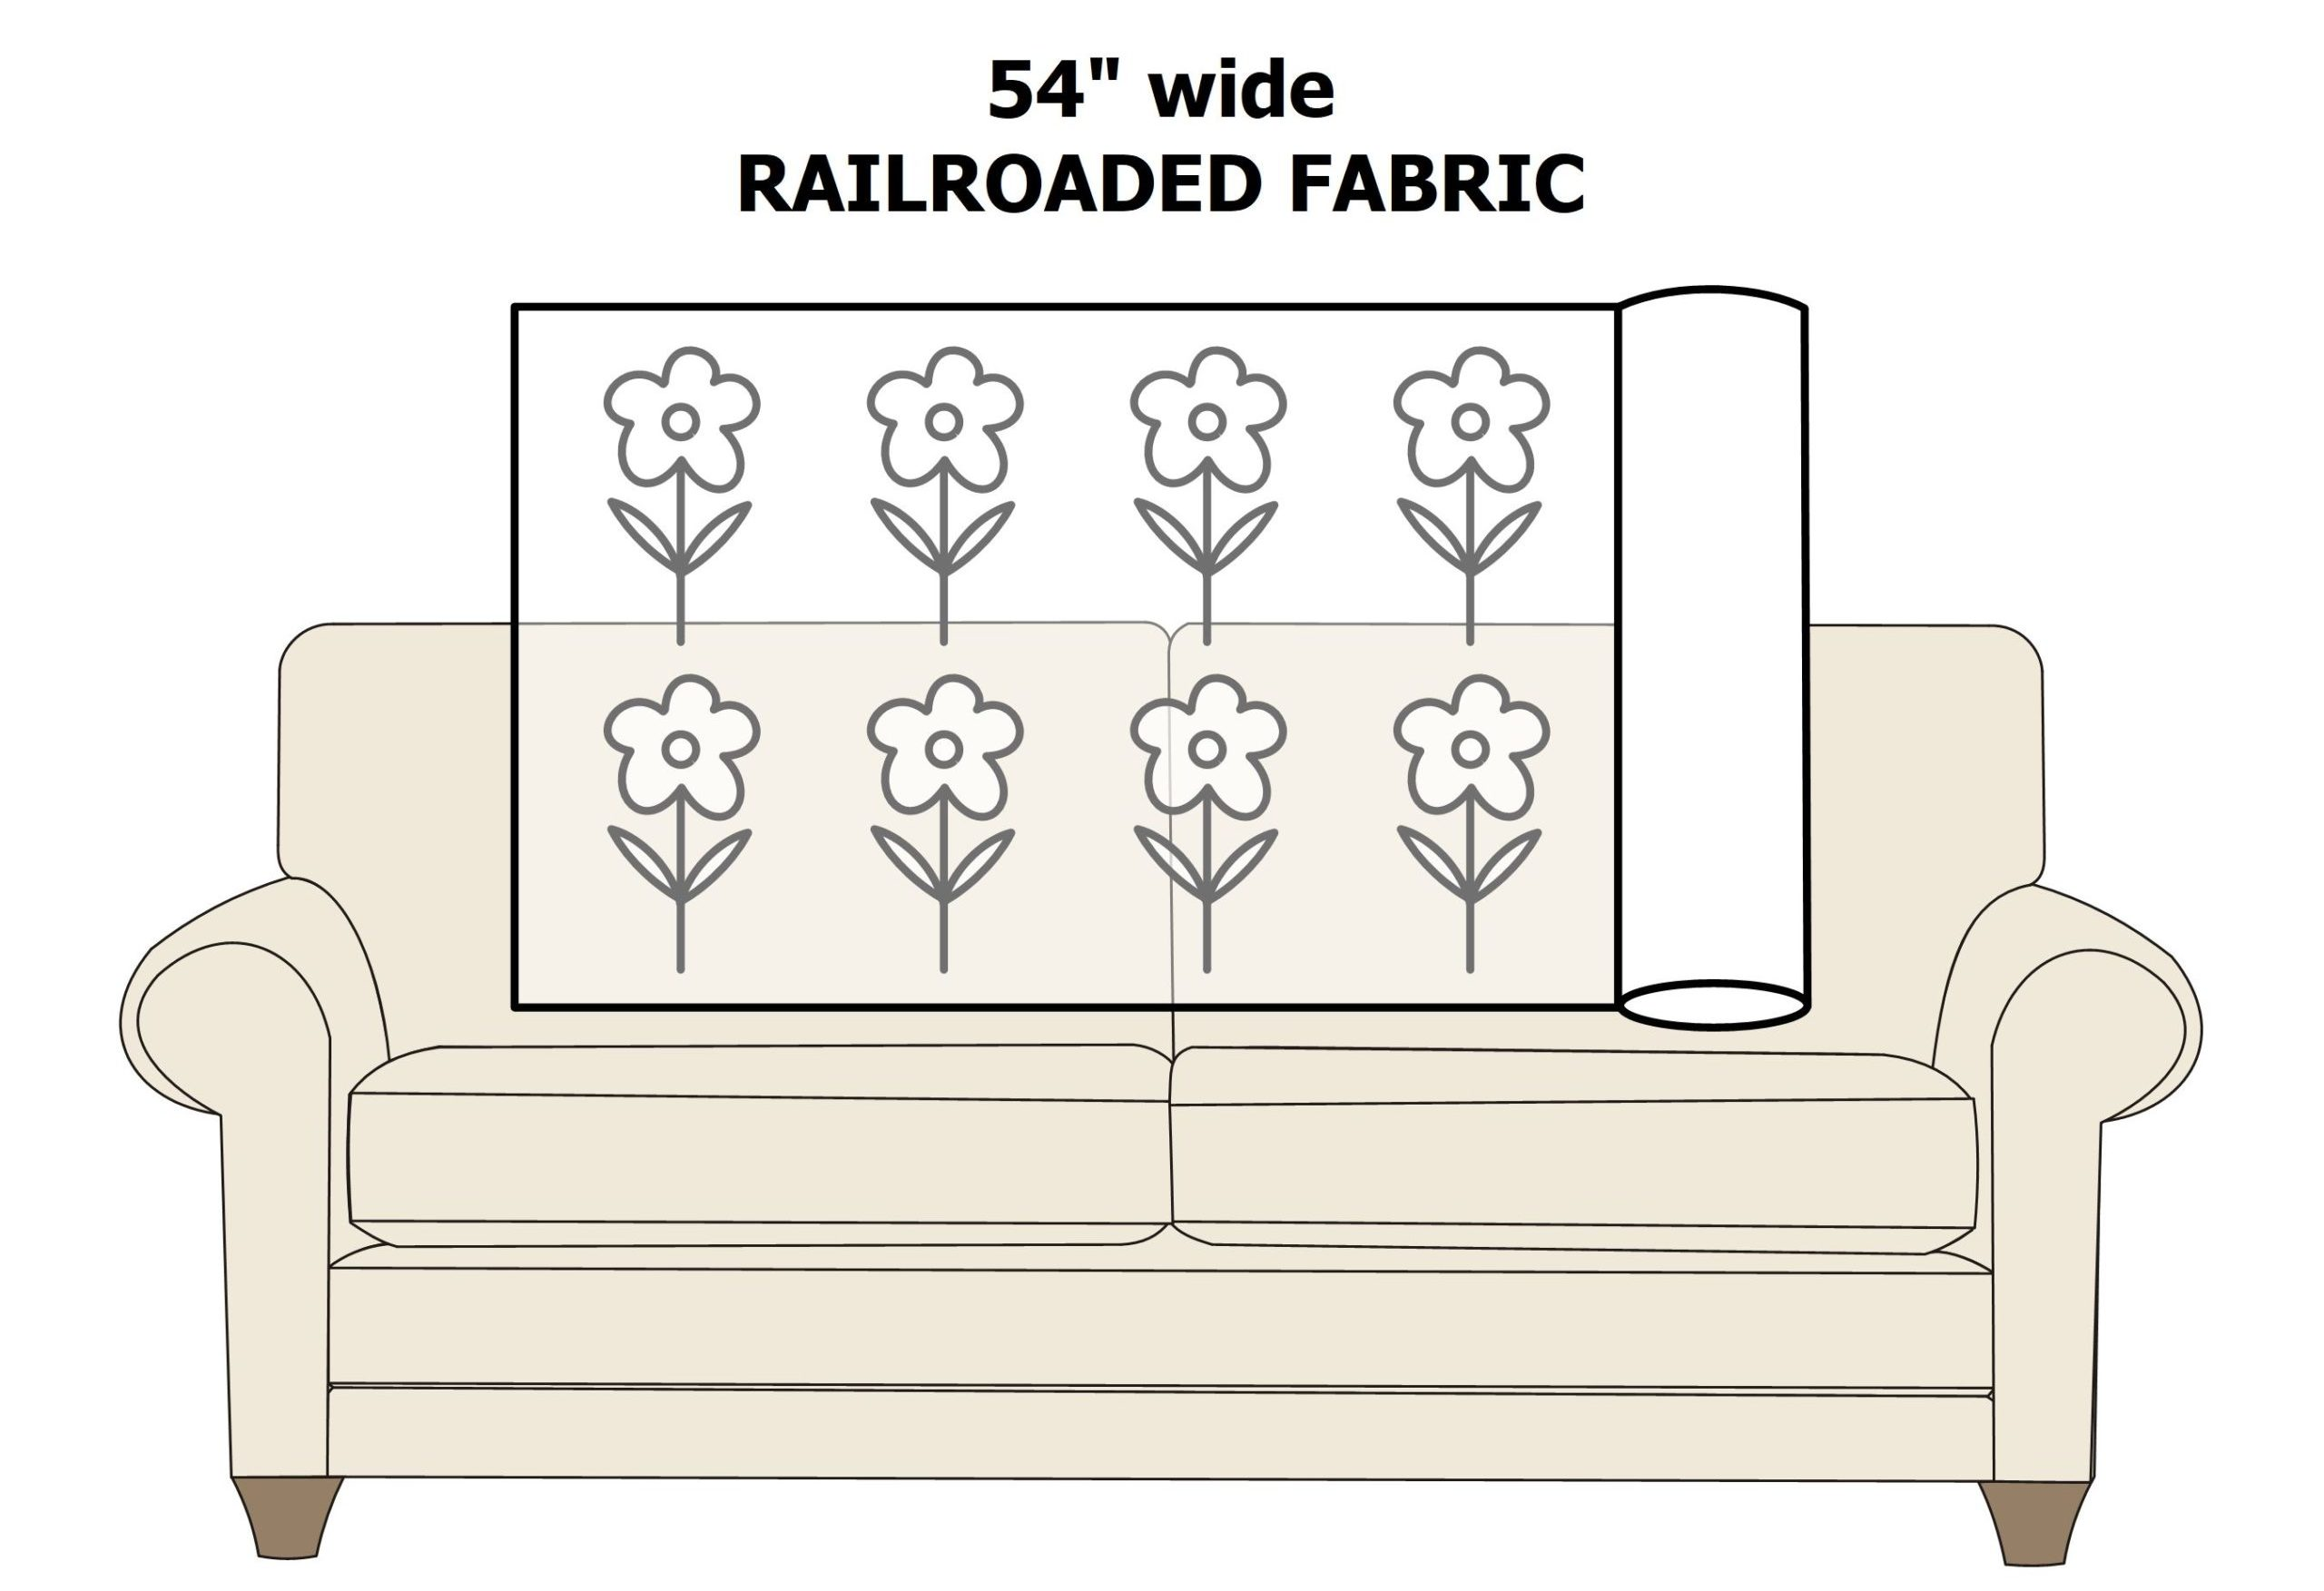 What is a railroaded fabric?